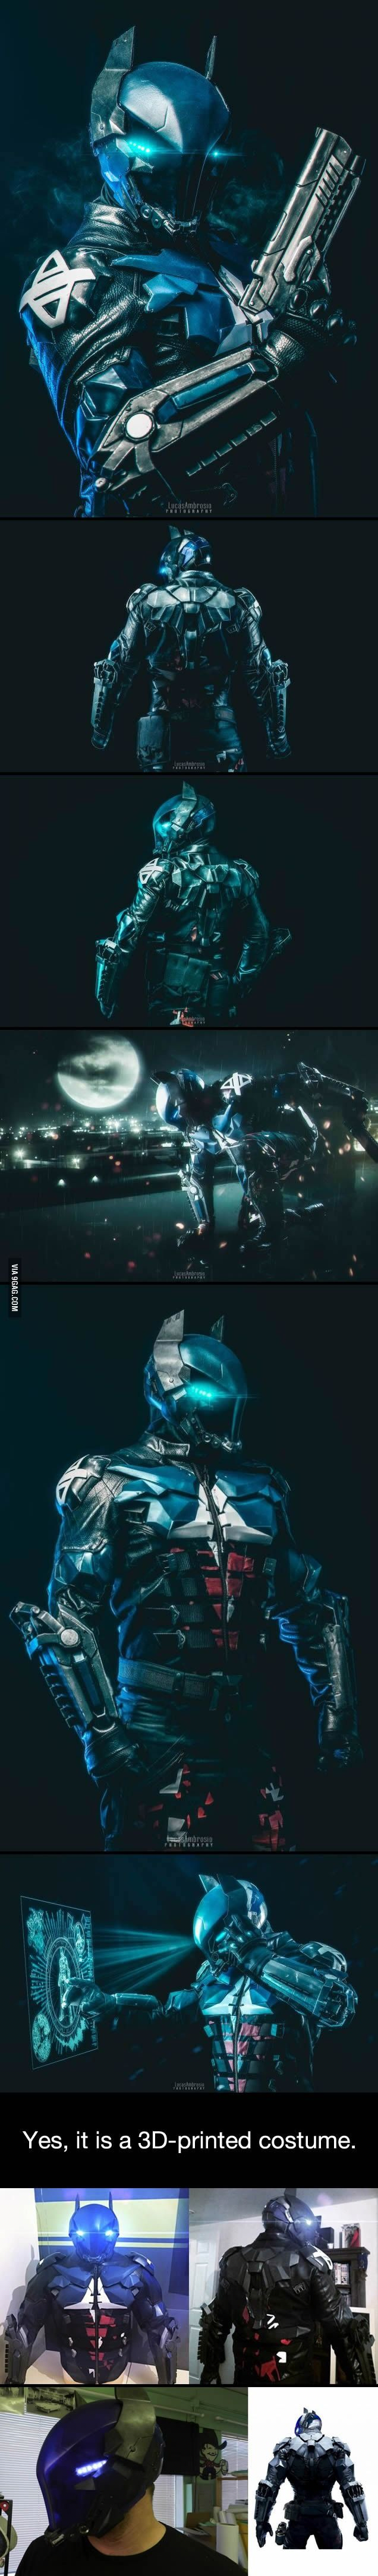 This 3D-printed Arkham Knight costume is just too boss - www.facebook/groups/humor9